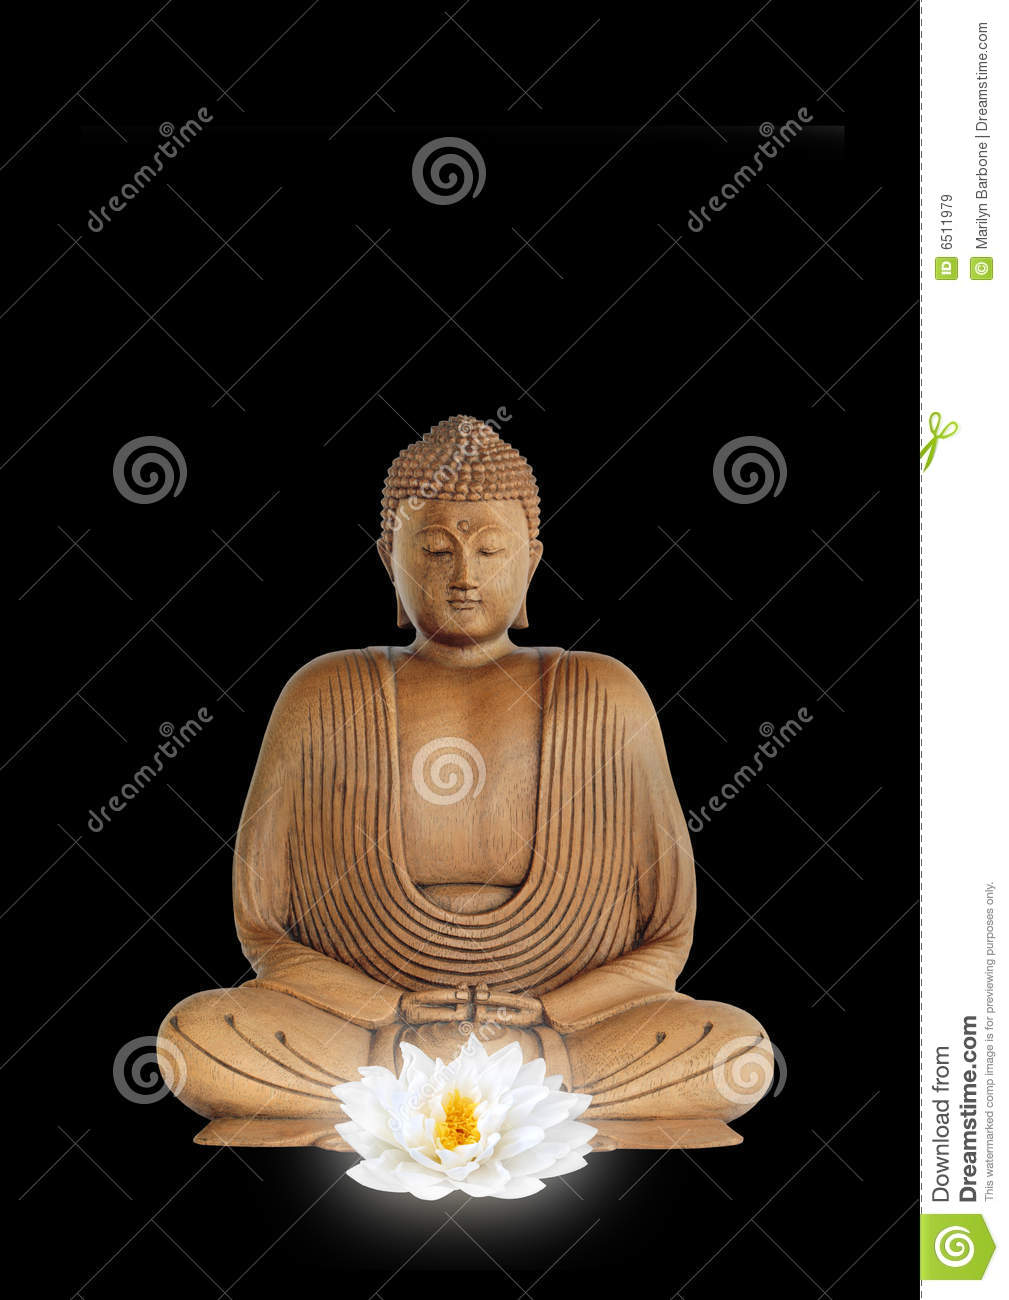 Buddha And White Lotus Flower Stock Image Image Of Enlightenment